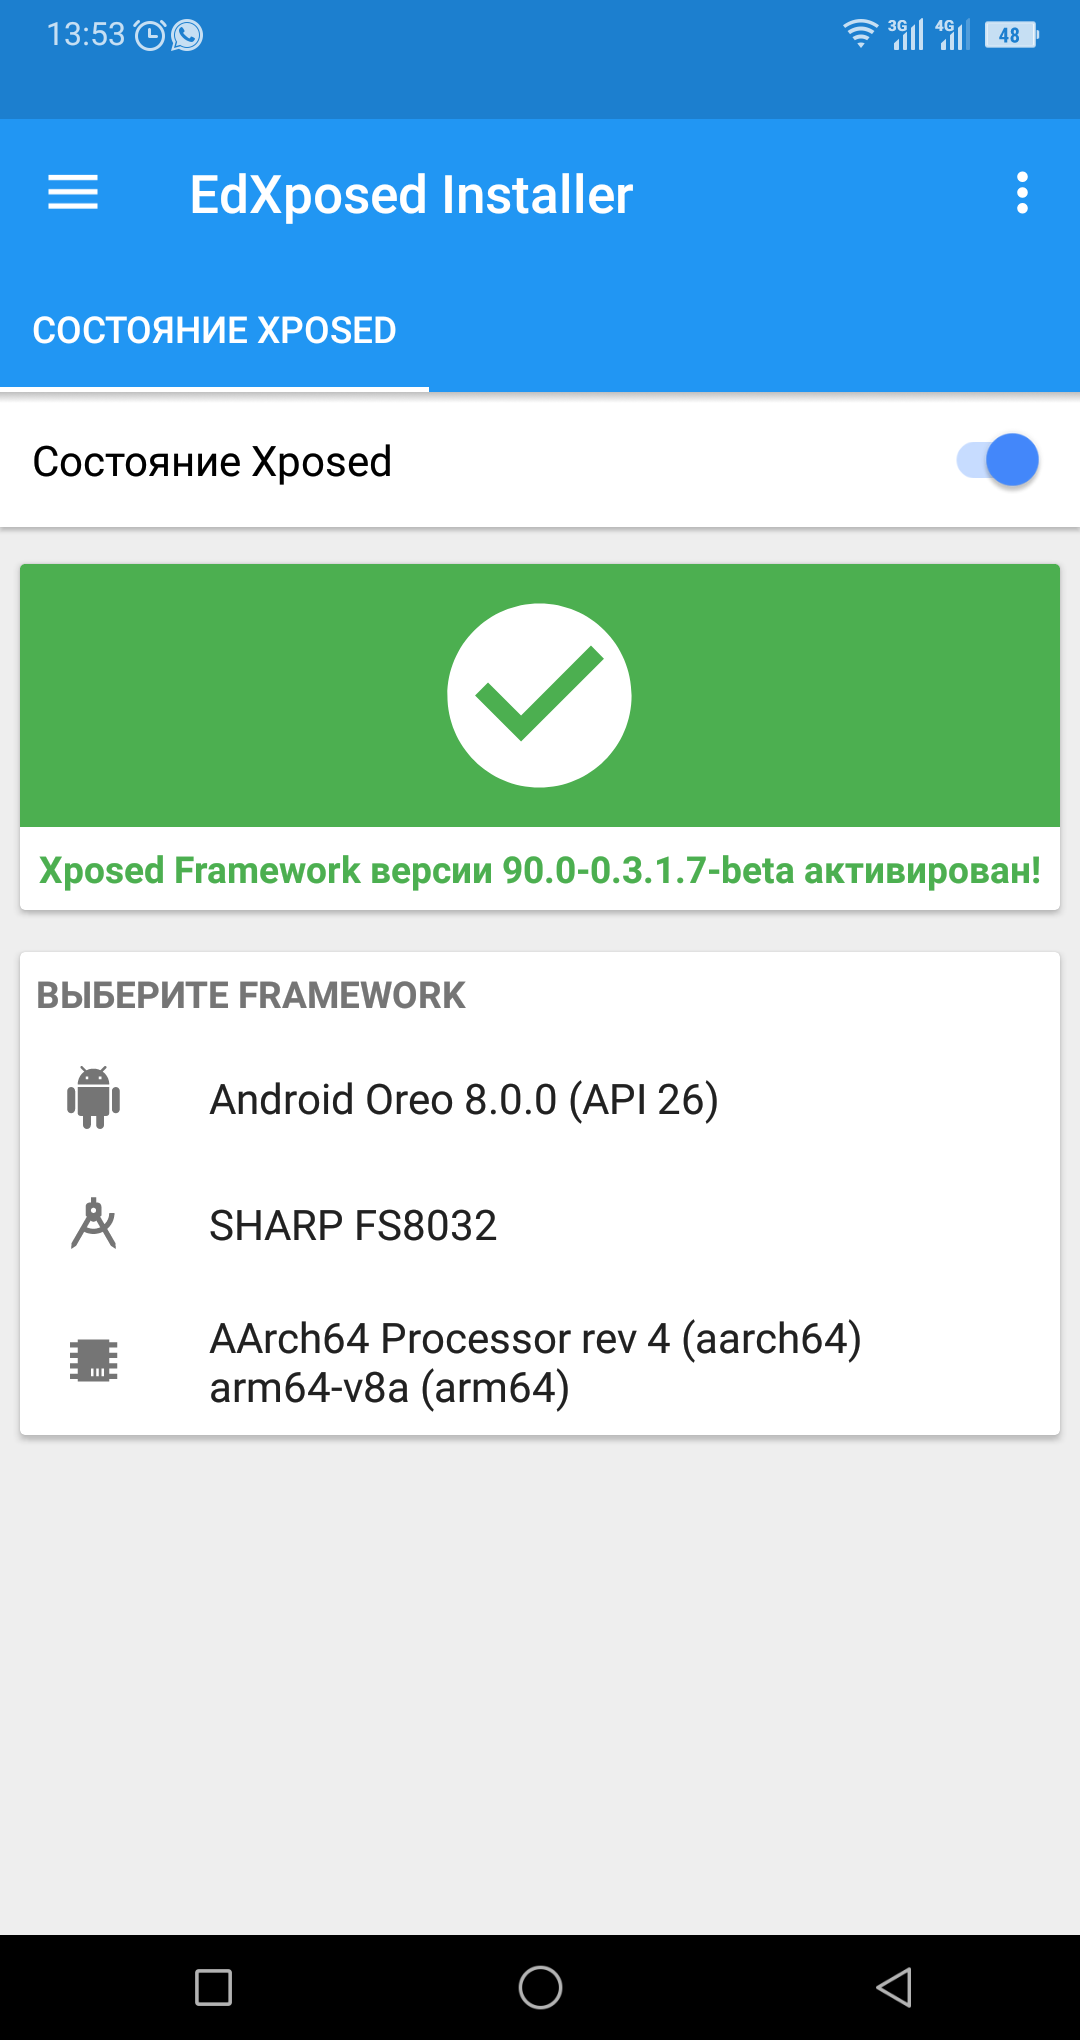 BUG] Framework not answering · Issue #206 · ElderDrivers/EdXposed